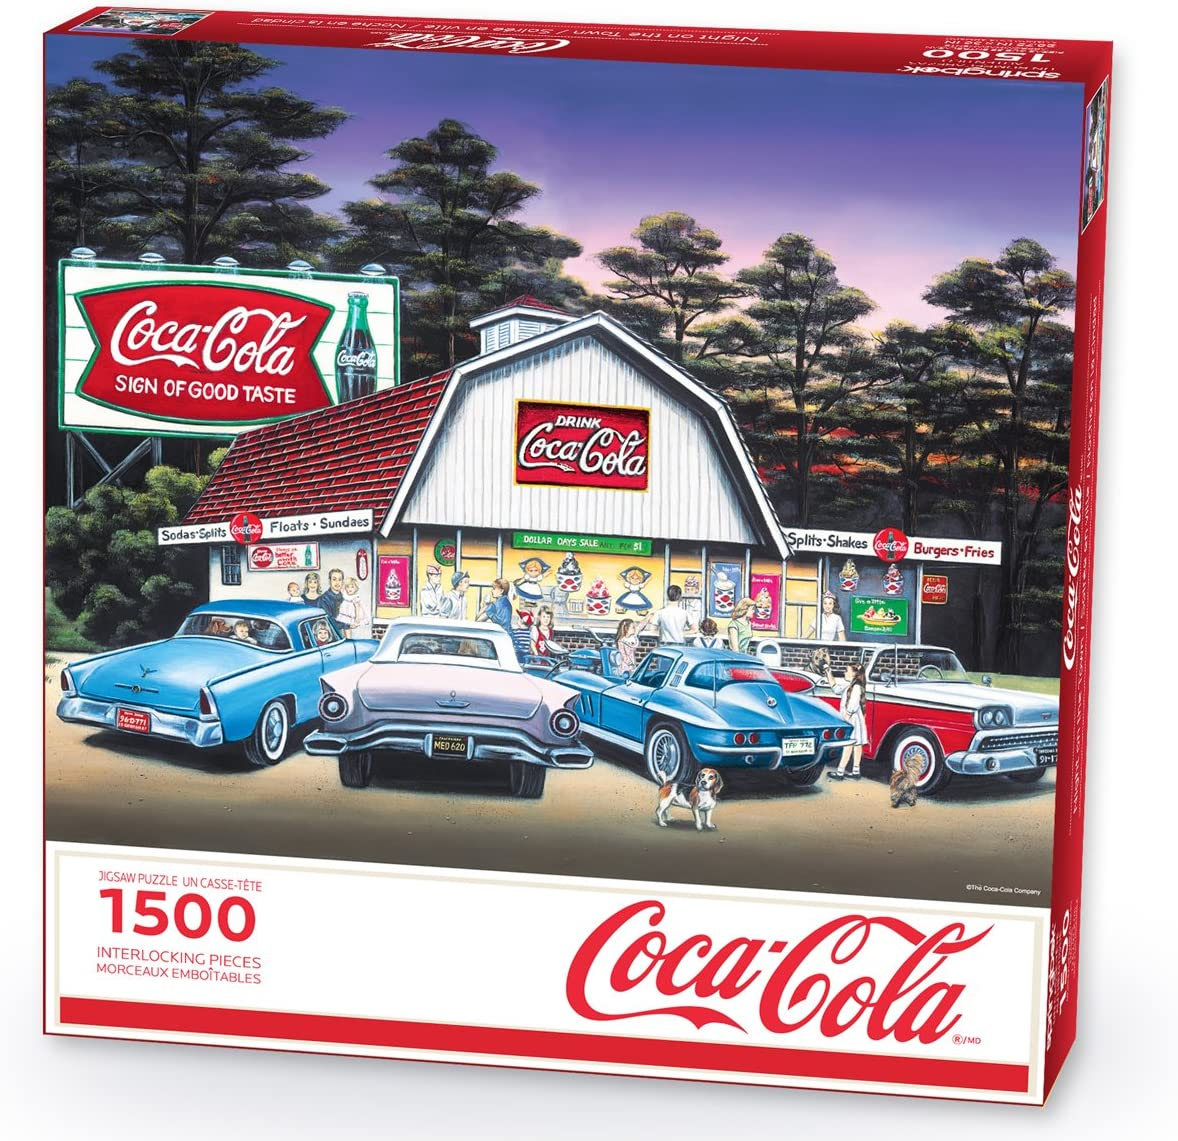 Made in USA 1500 Piece Jigsaw Puzzle Springbok Puzzles Large 36 Inches by 28.75 Puzzle Unique Cut Interlocking Pieces Night on The Town